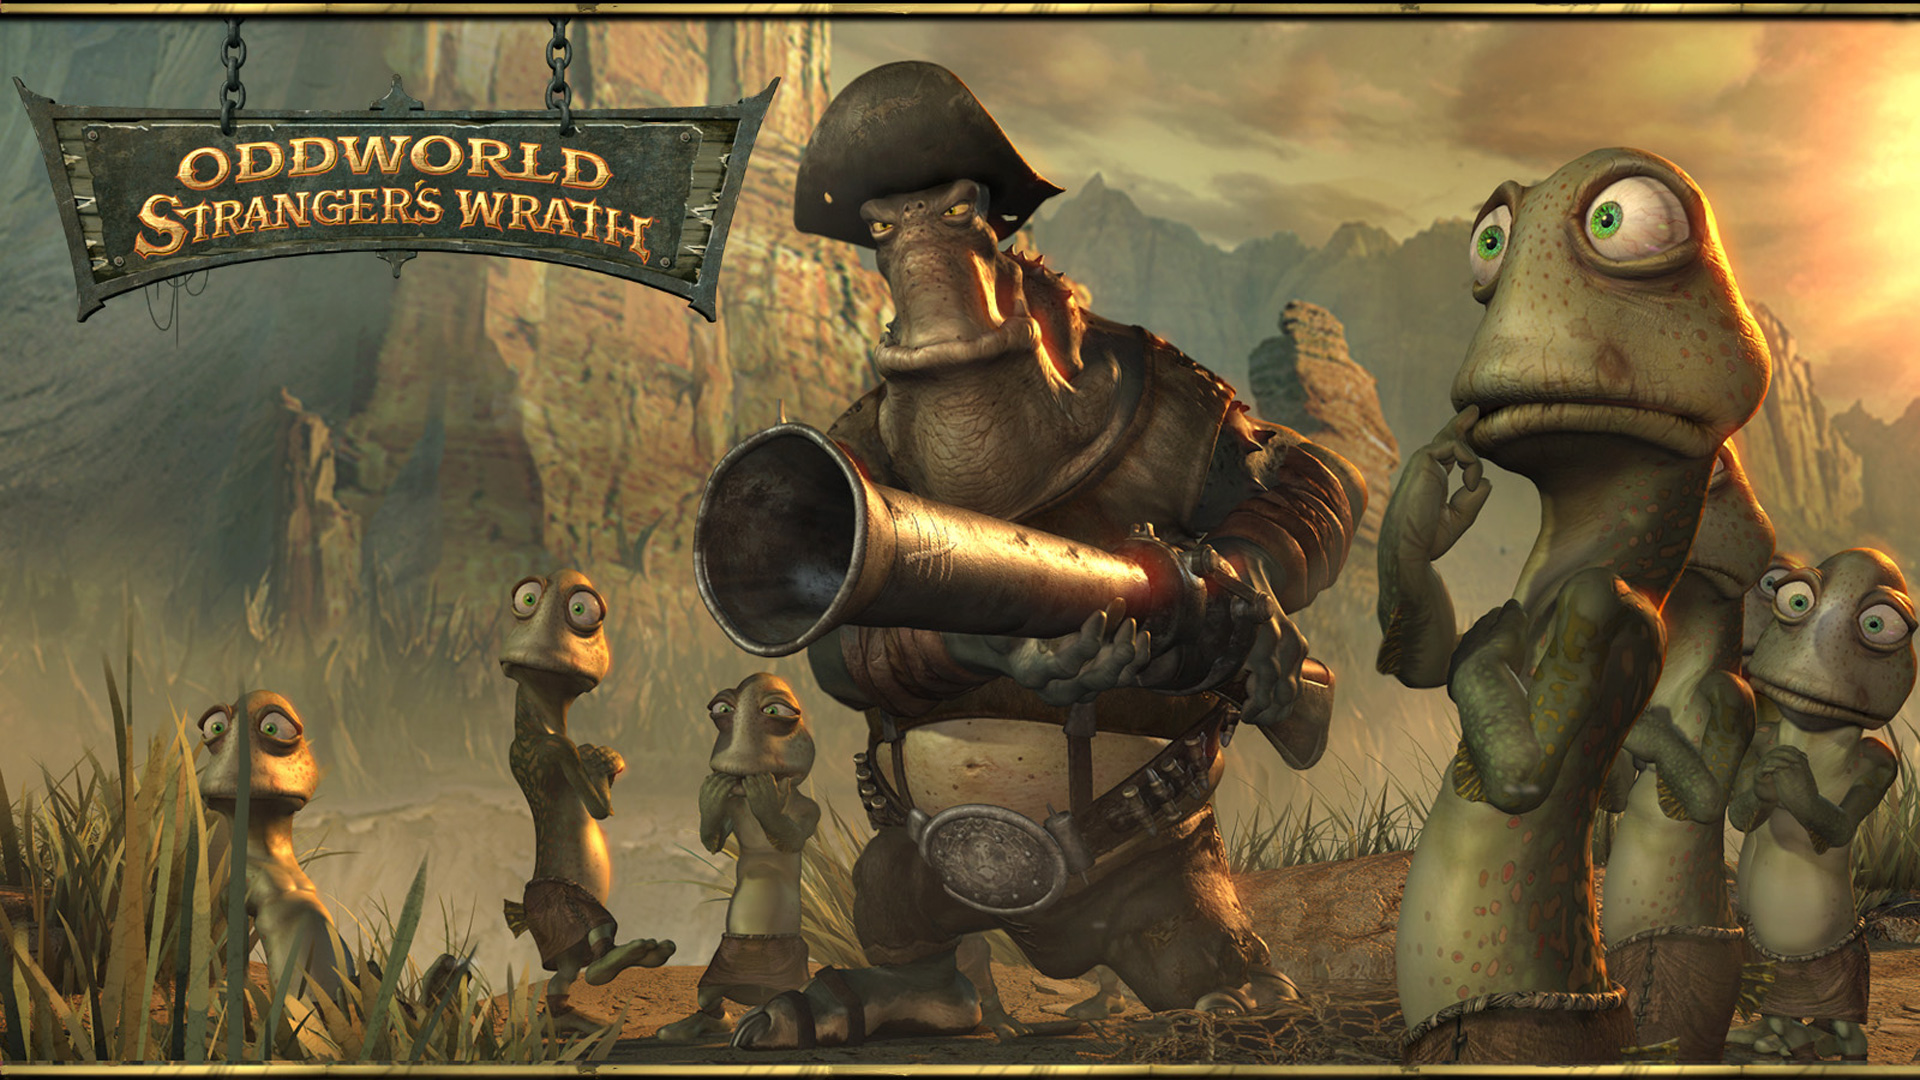 Oddworld: Stranger's Wrath Wallpaper in 1920x1080